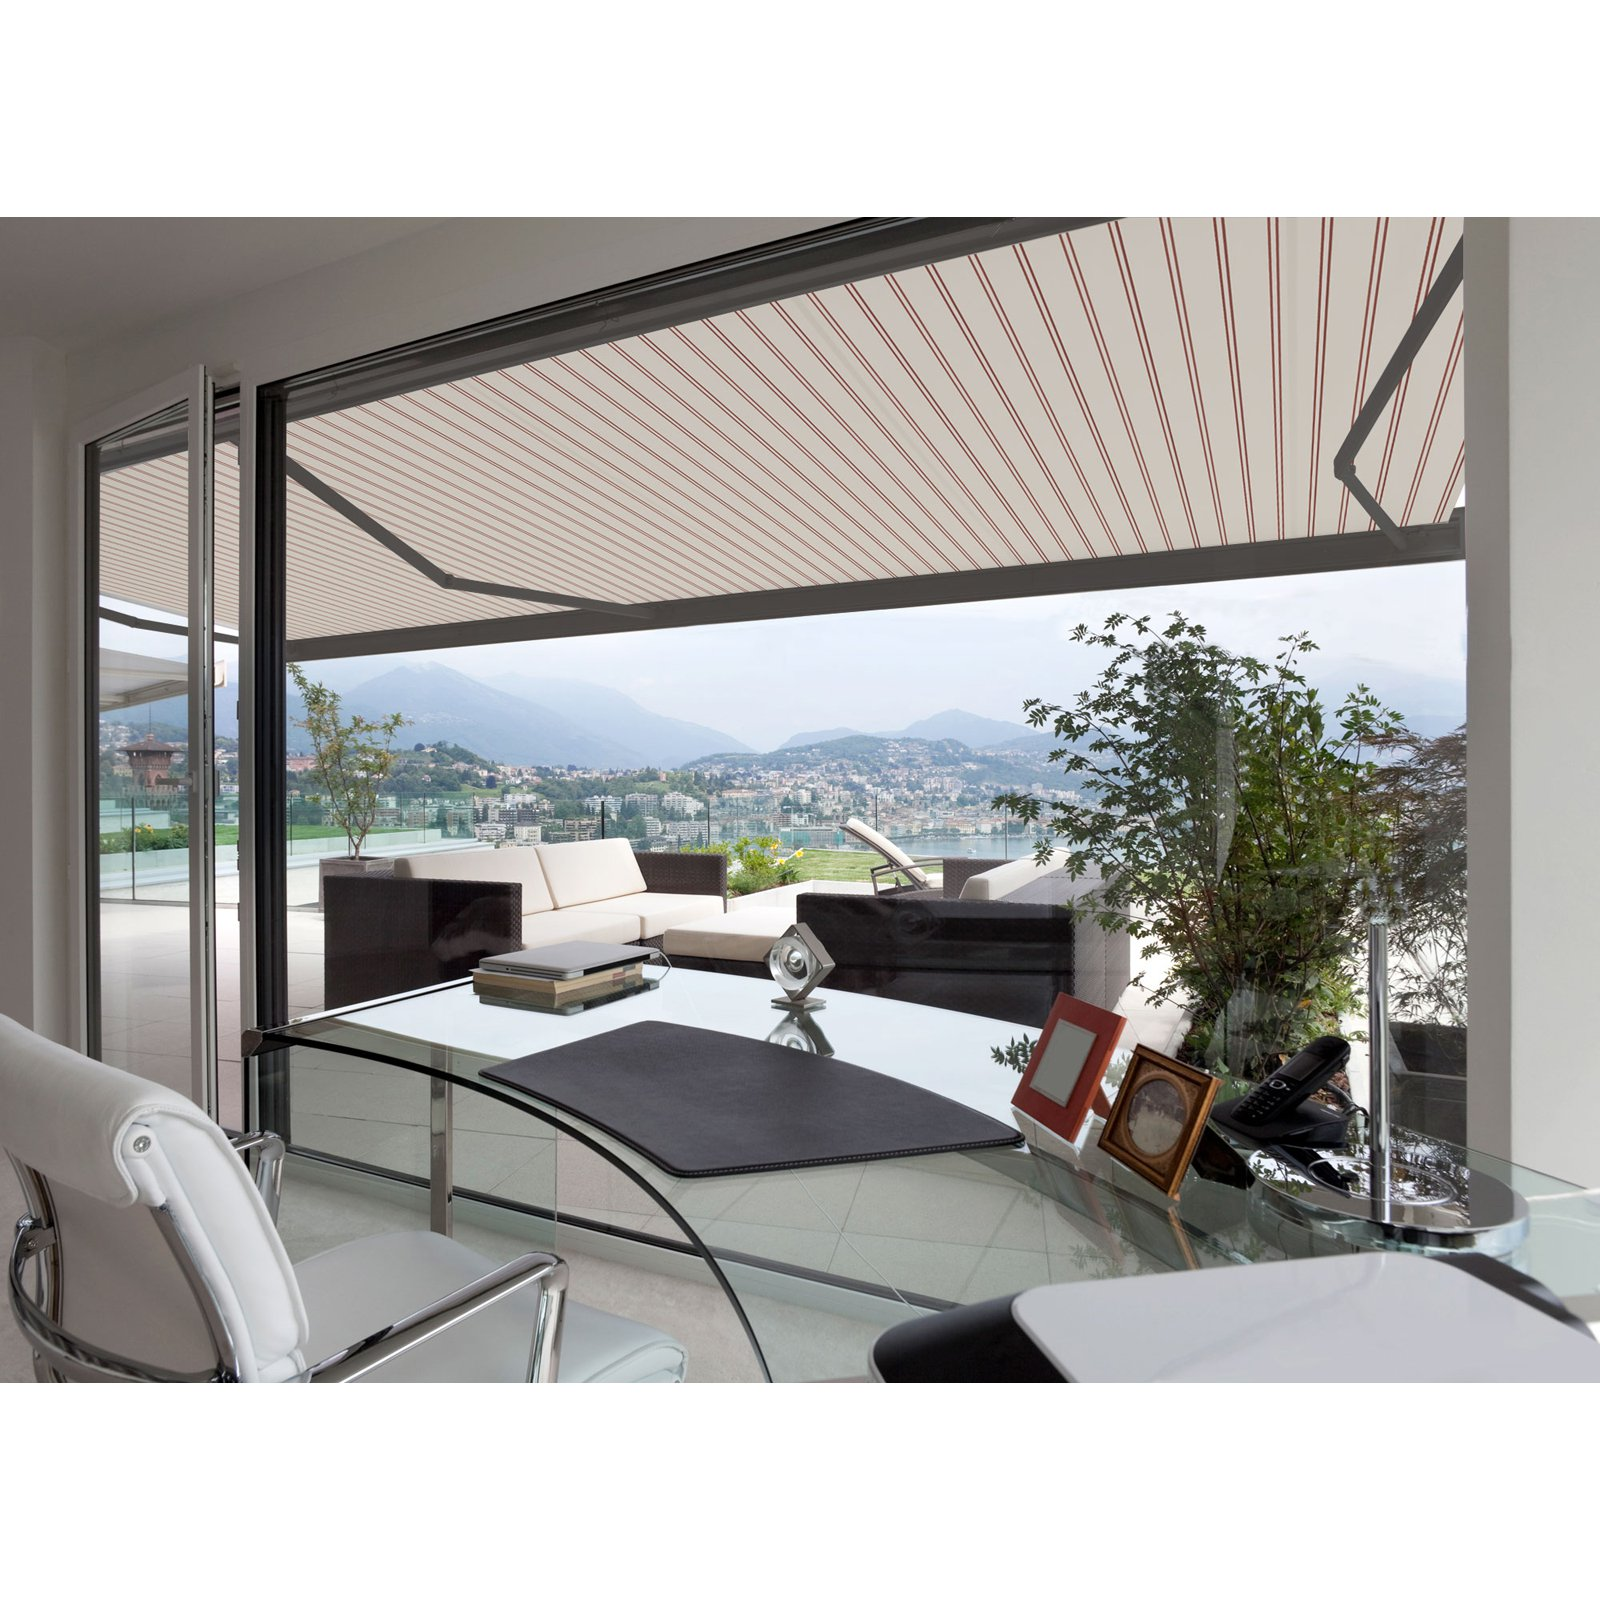 Motorised Retractable Awnings – Understand How They Work And The Benefits Involved